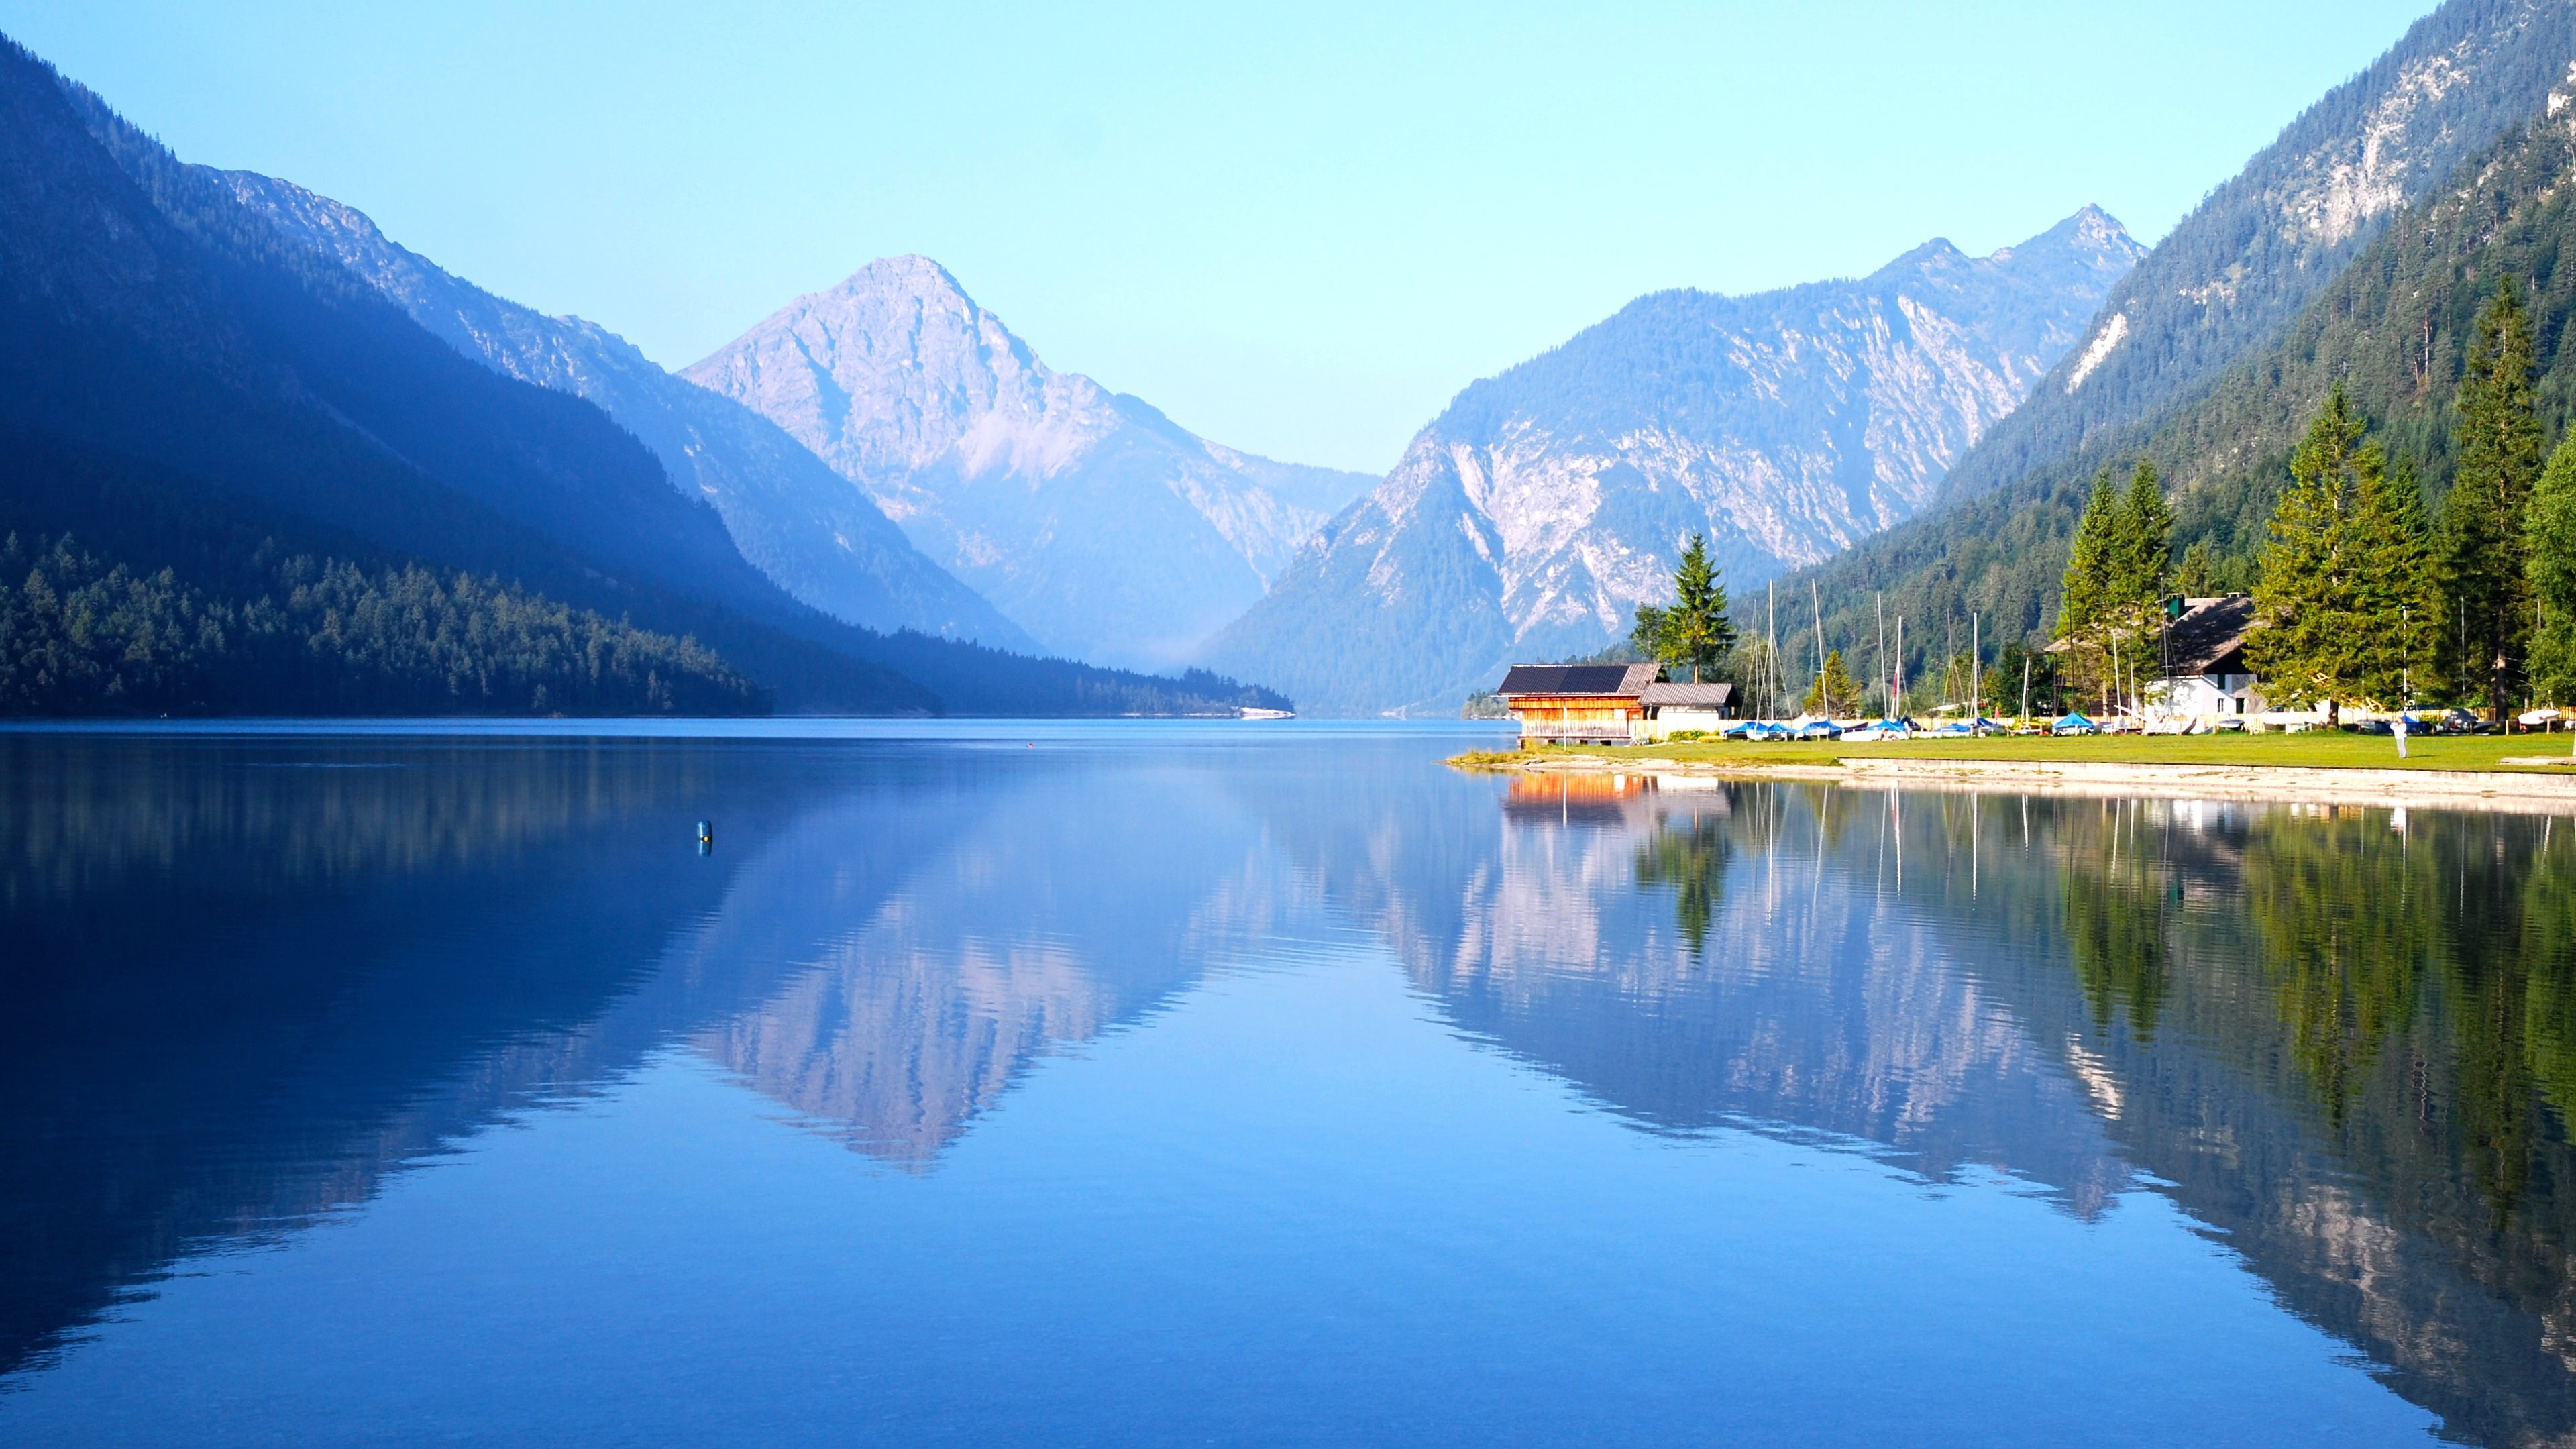 Plansee Lake Wallpapers HD Wallpapers 3840x2160